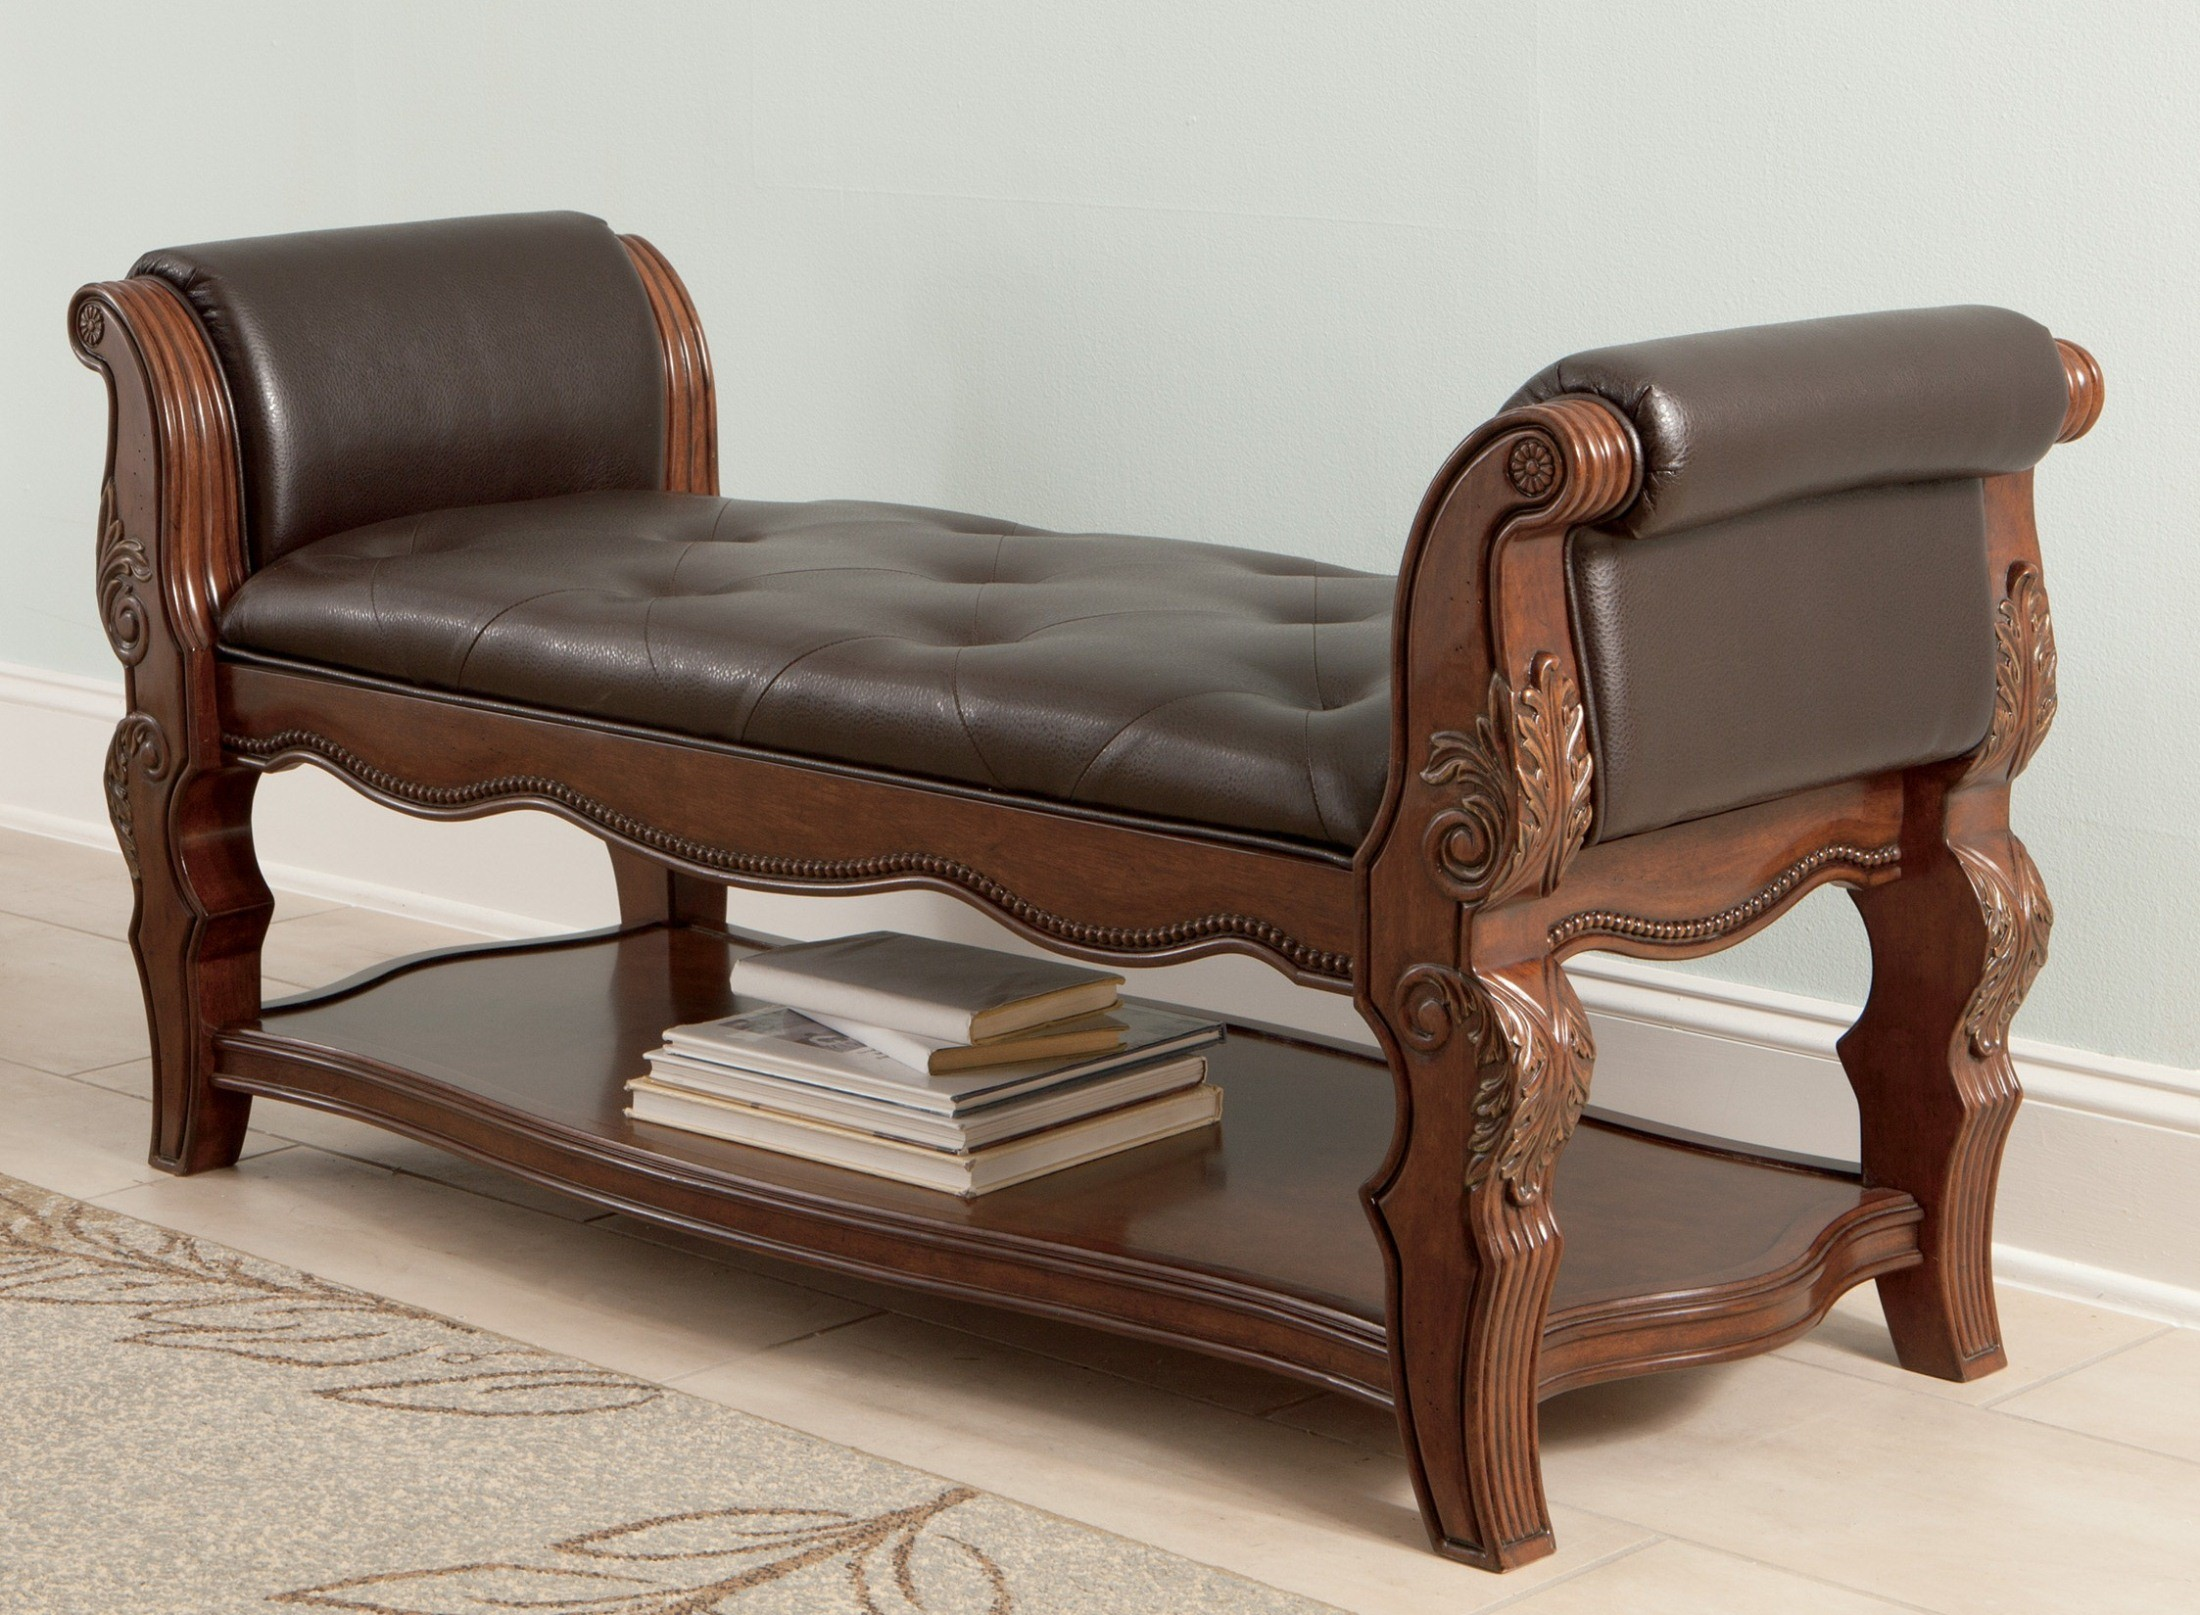 Ledelle Upholstered Bench From Ashley B705 09 Coleman Furniture